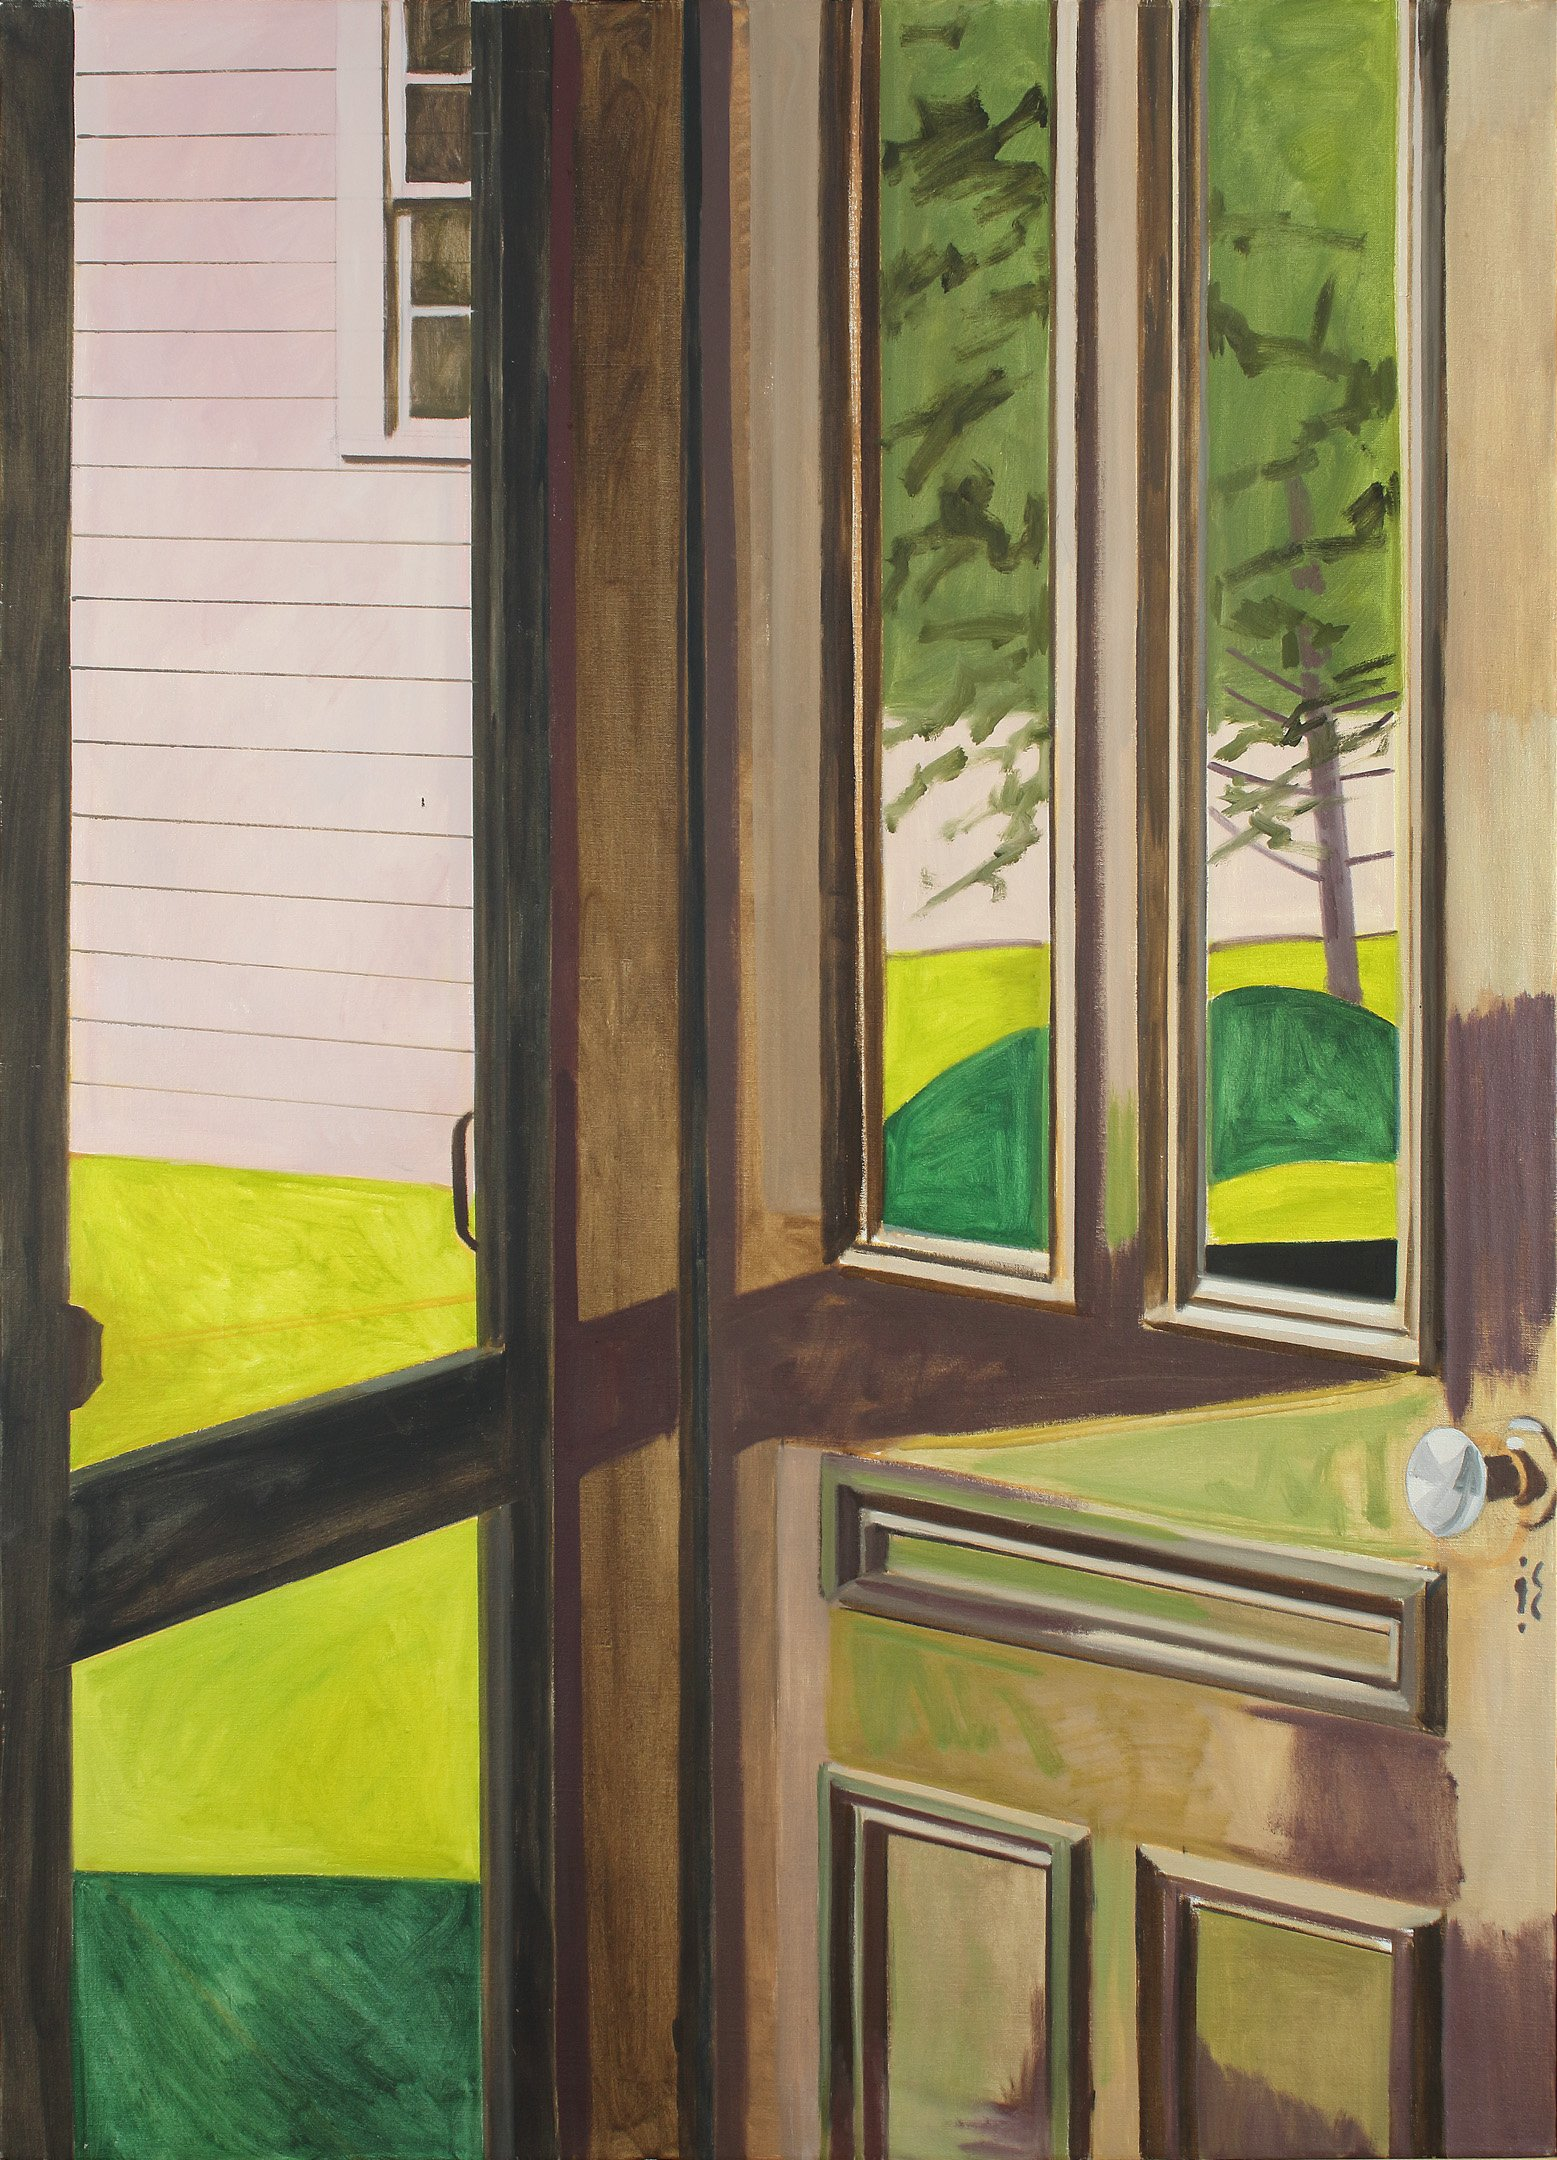 Lois Dodd, Open Door, Pink and Green, 1982. Oil on linen; 50 x 36 inches. (LD 588)